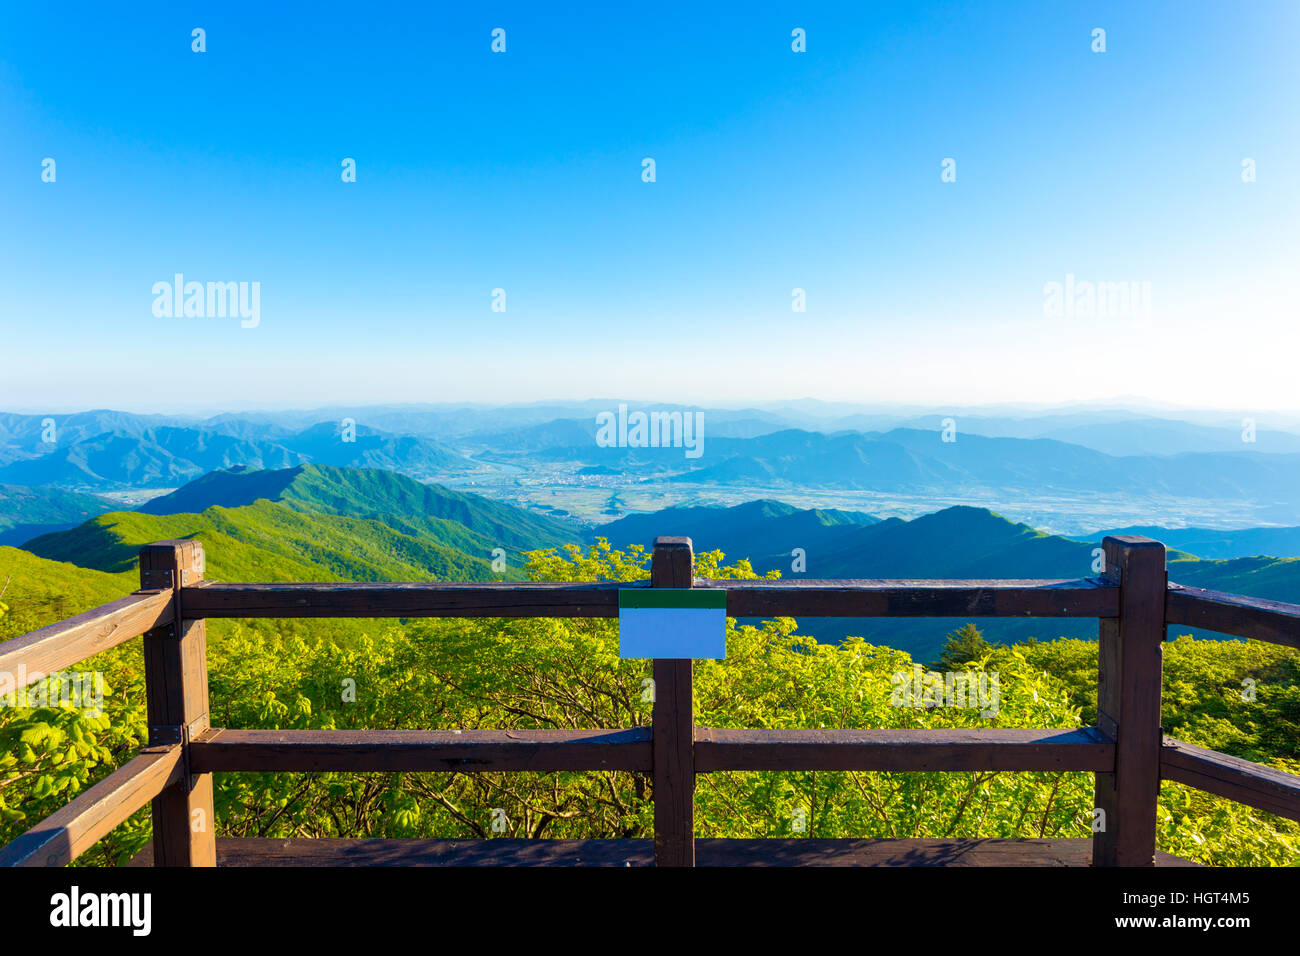 Wooden viewpoint deck offering clear view of valley below from atop Jirisan Mountain in South Korea. Horizontal - Stock Image